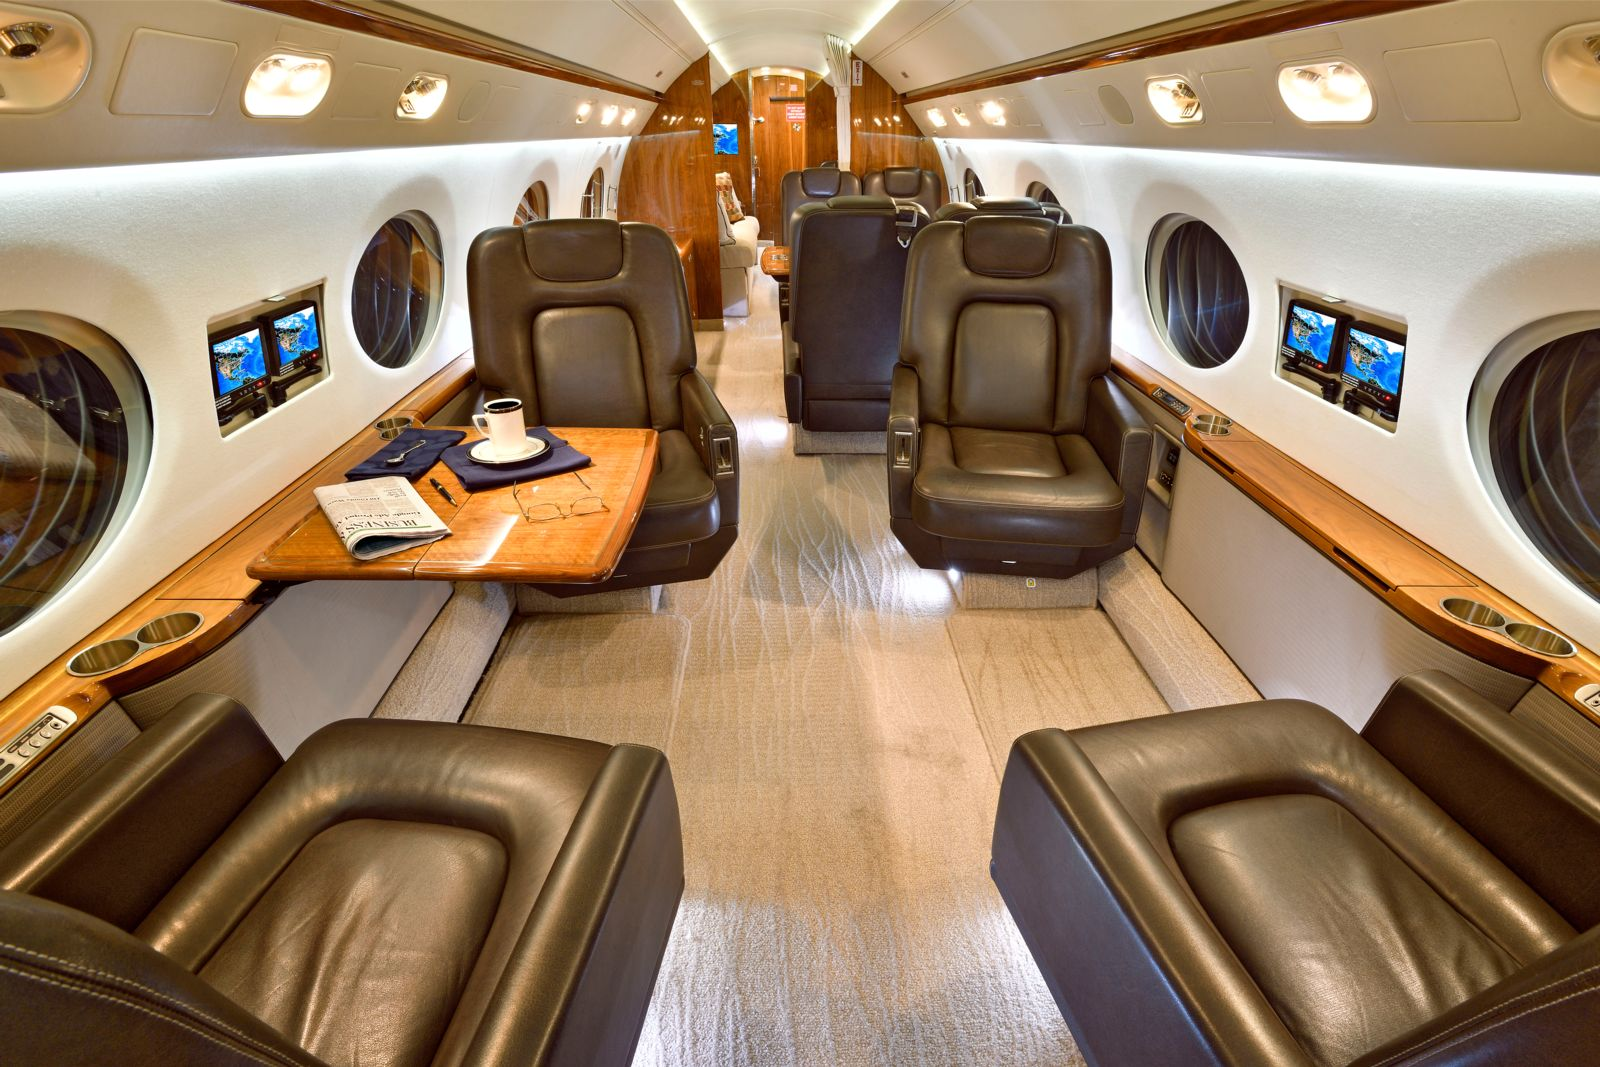 Gulfstream G550  S/N 5211 for sale | gallery image: /userfiles/images/G550_SN_5211/int1b_300.jpg